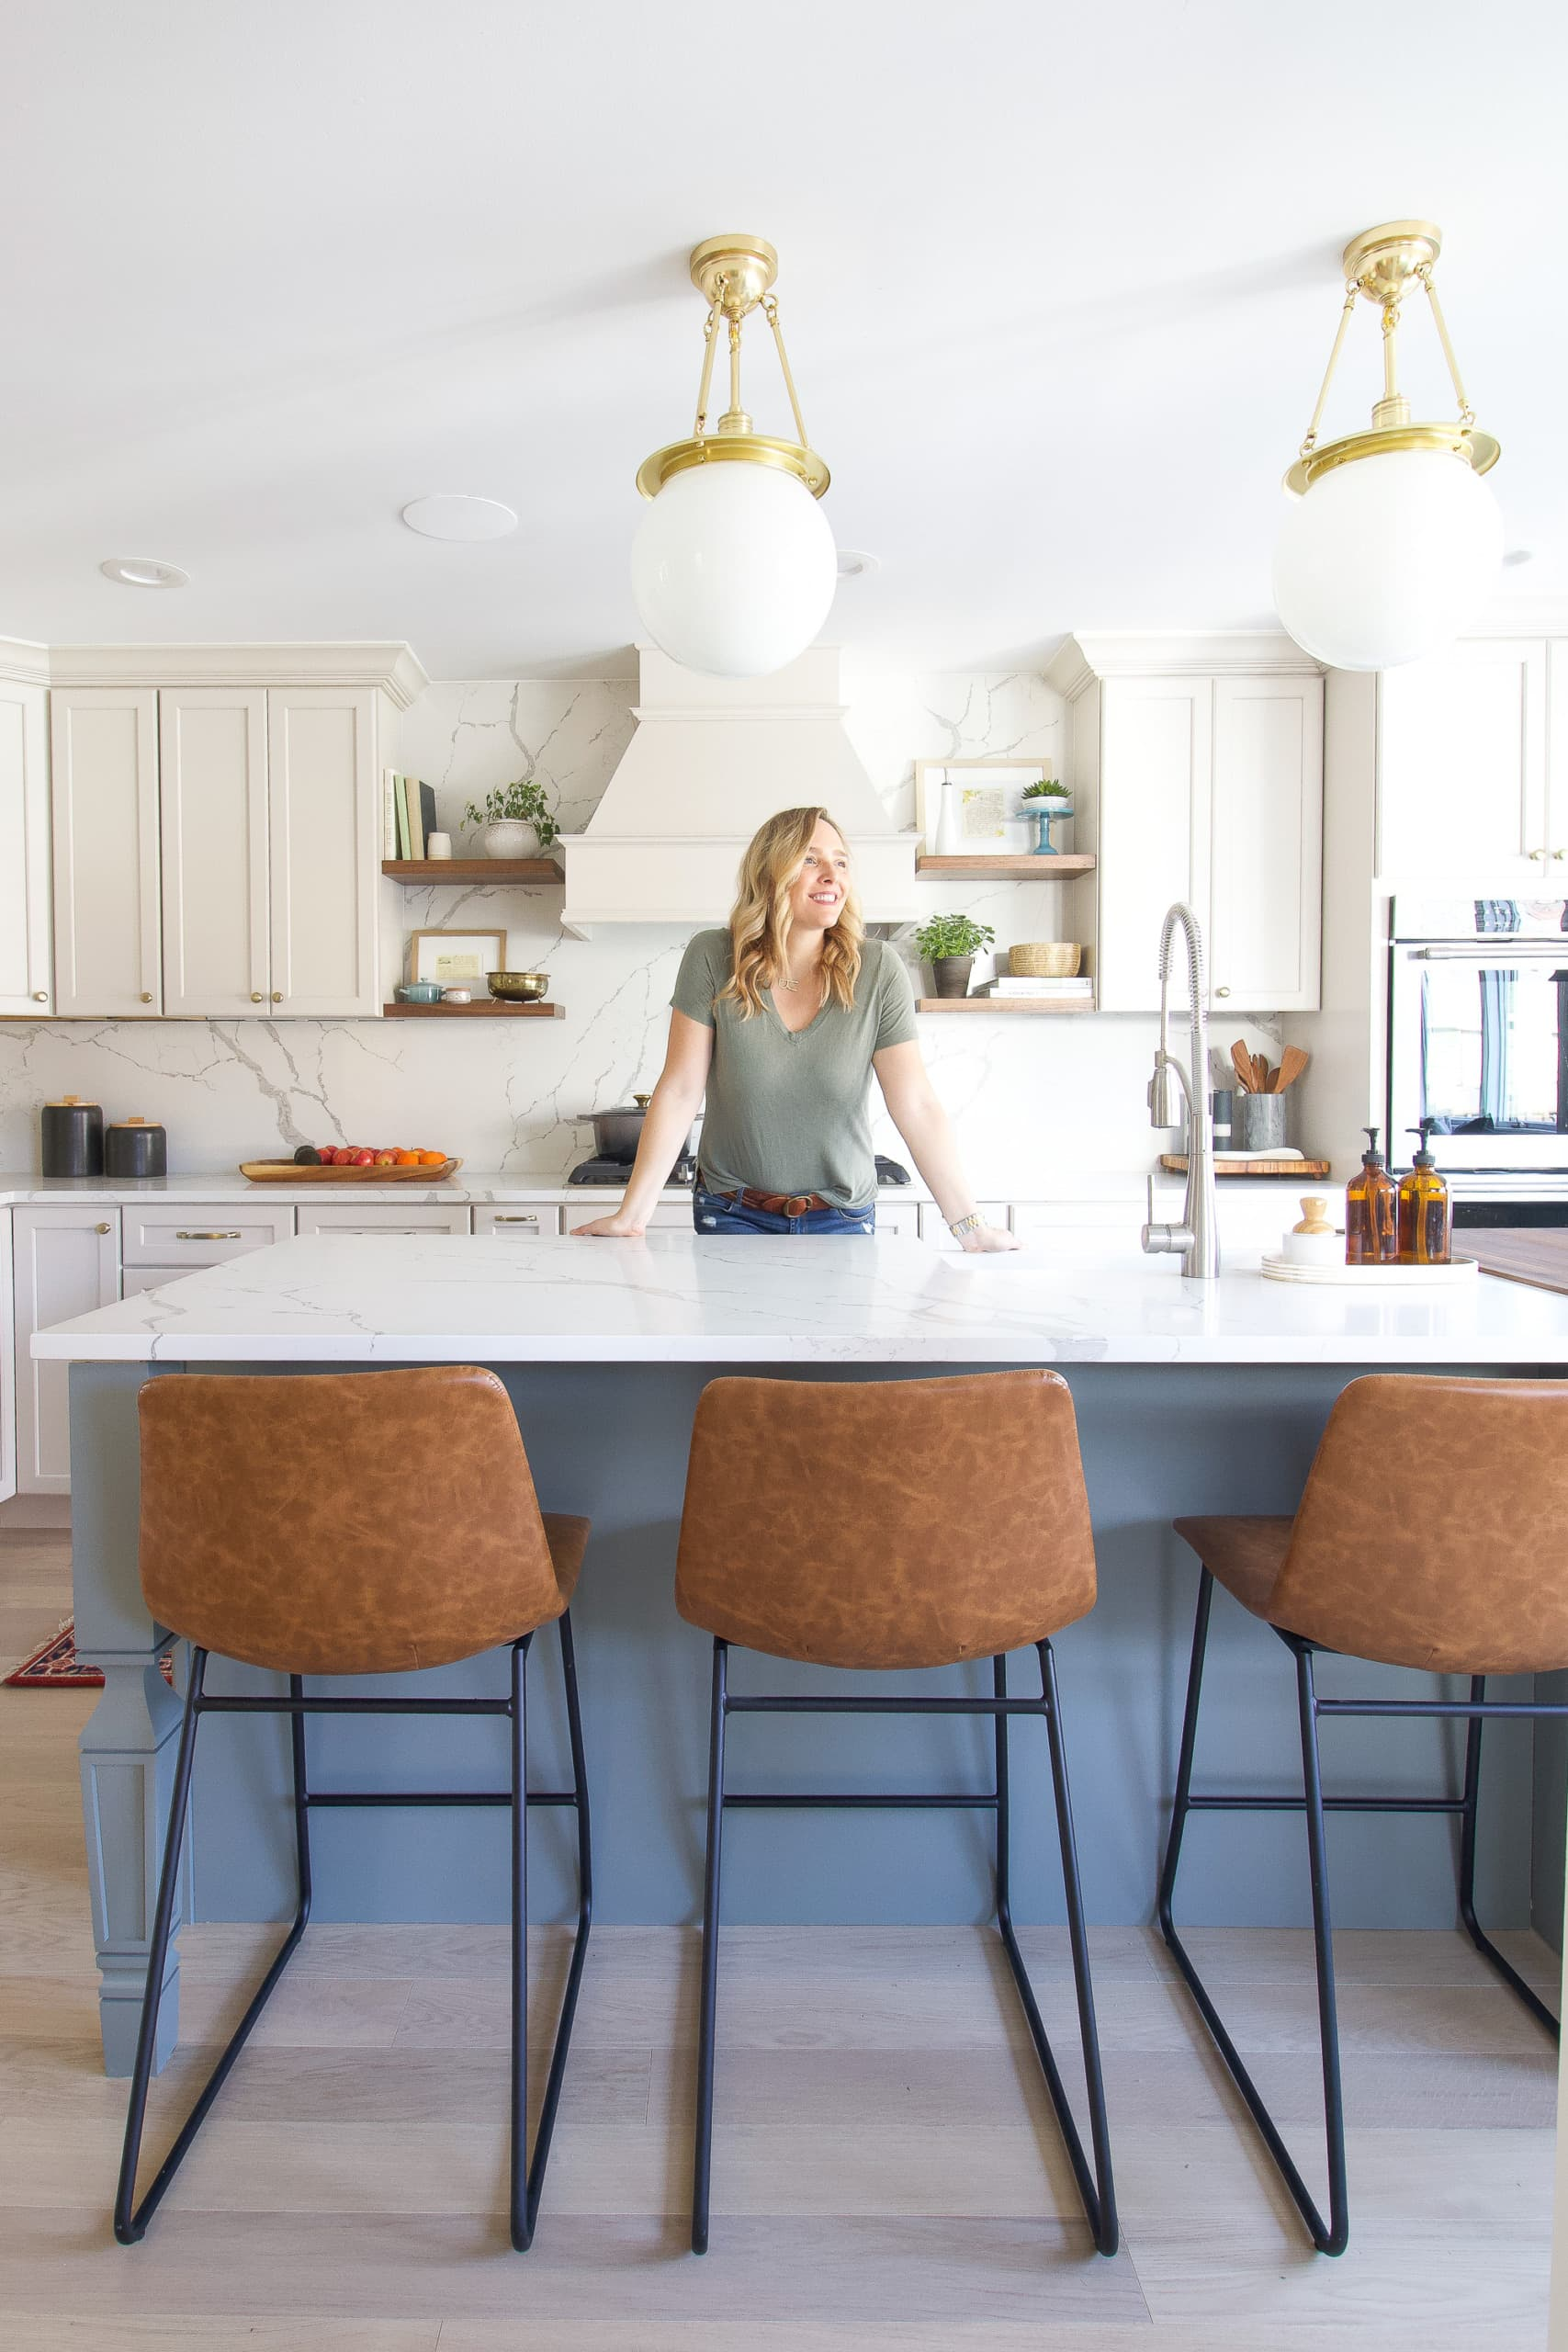 Our kitchen reveal!